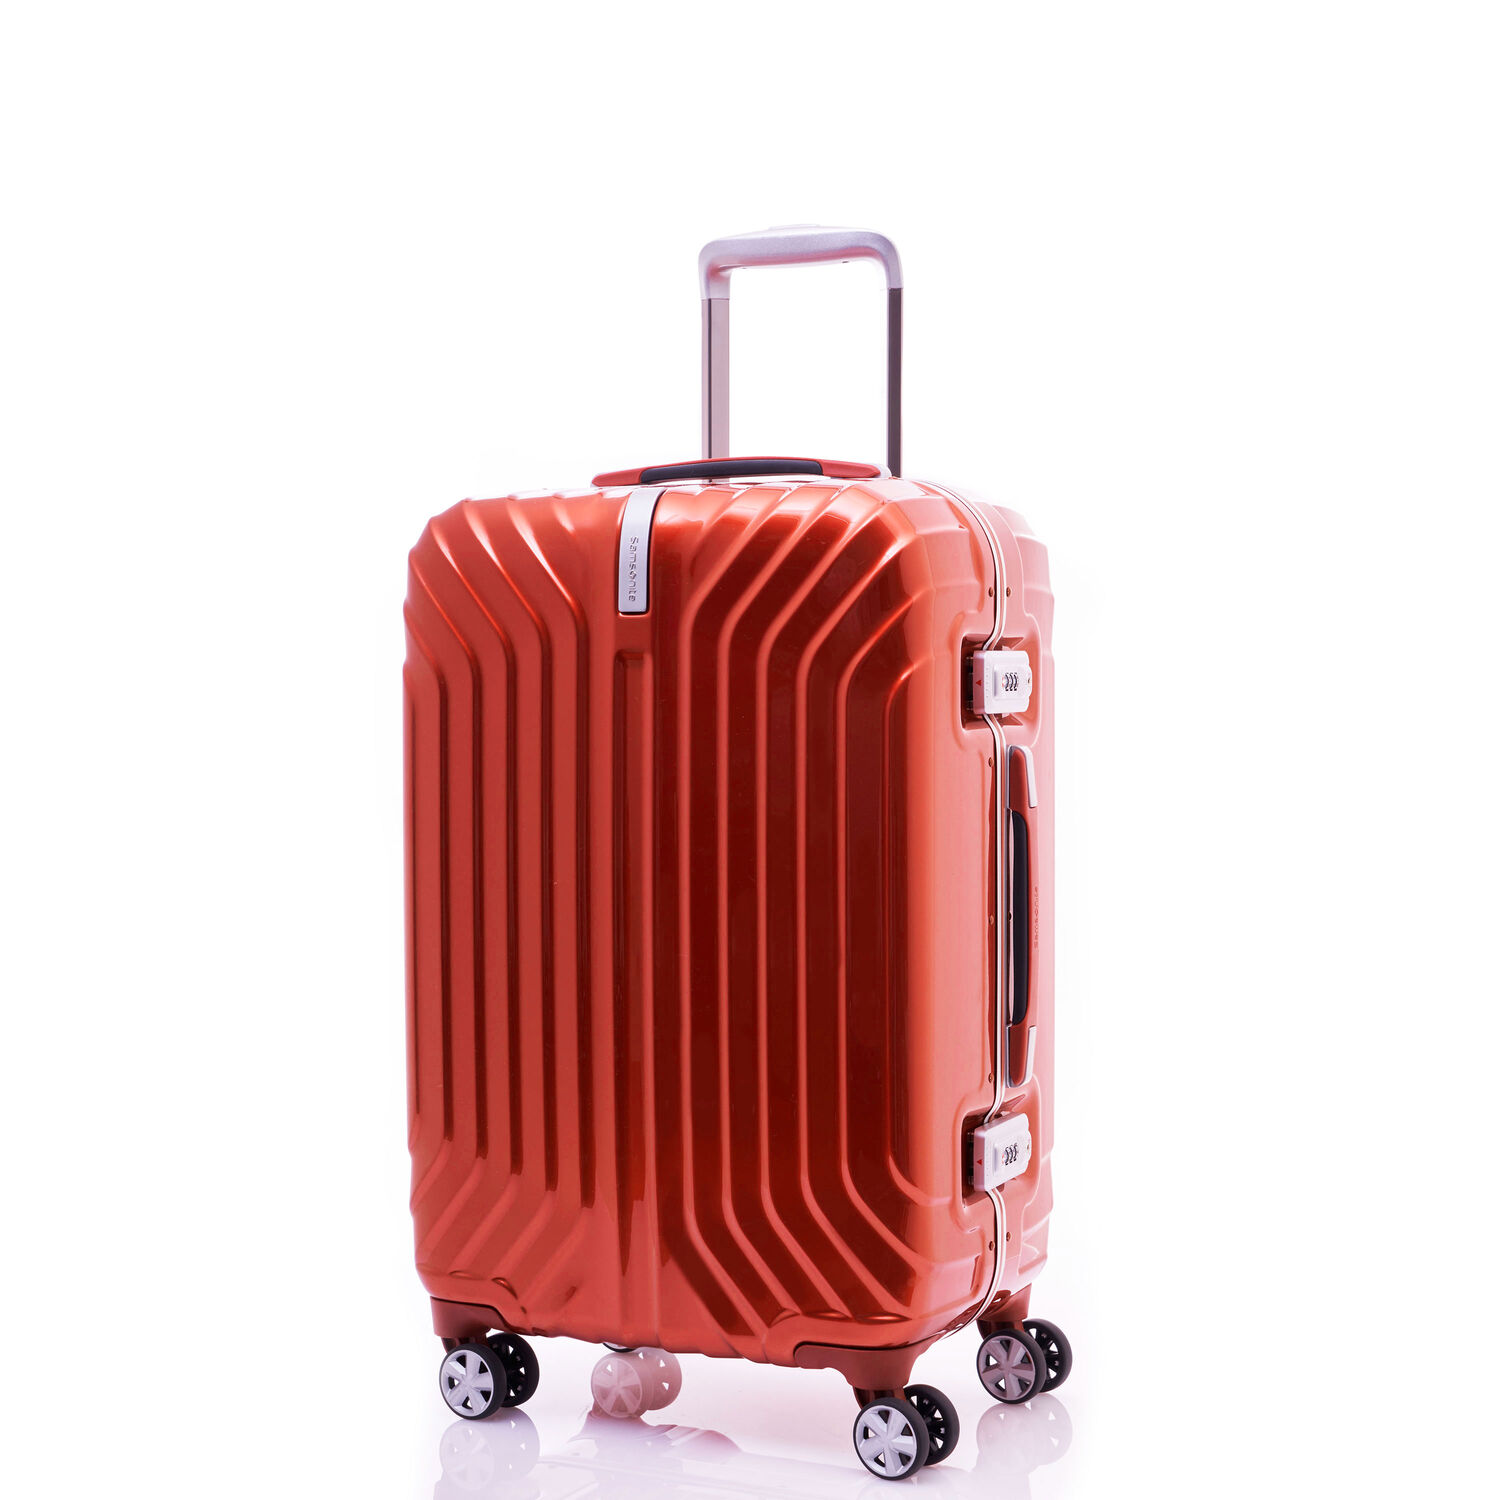 "Samsonite Tru-Frame Collection 20"" Spinner in the color Flame Orange."